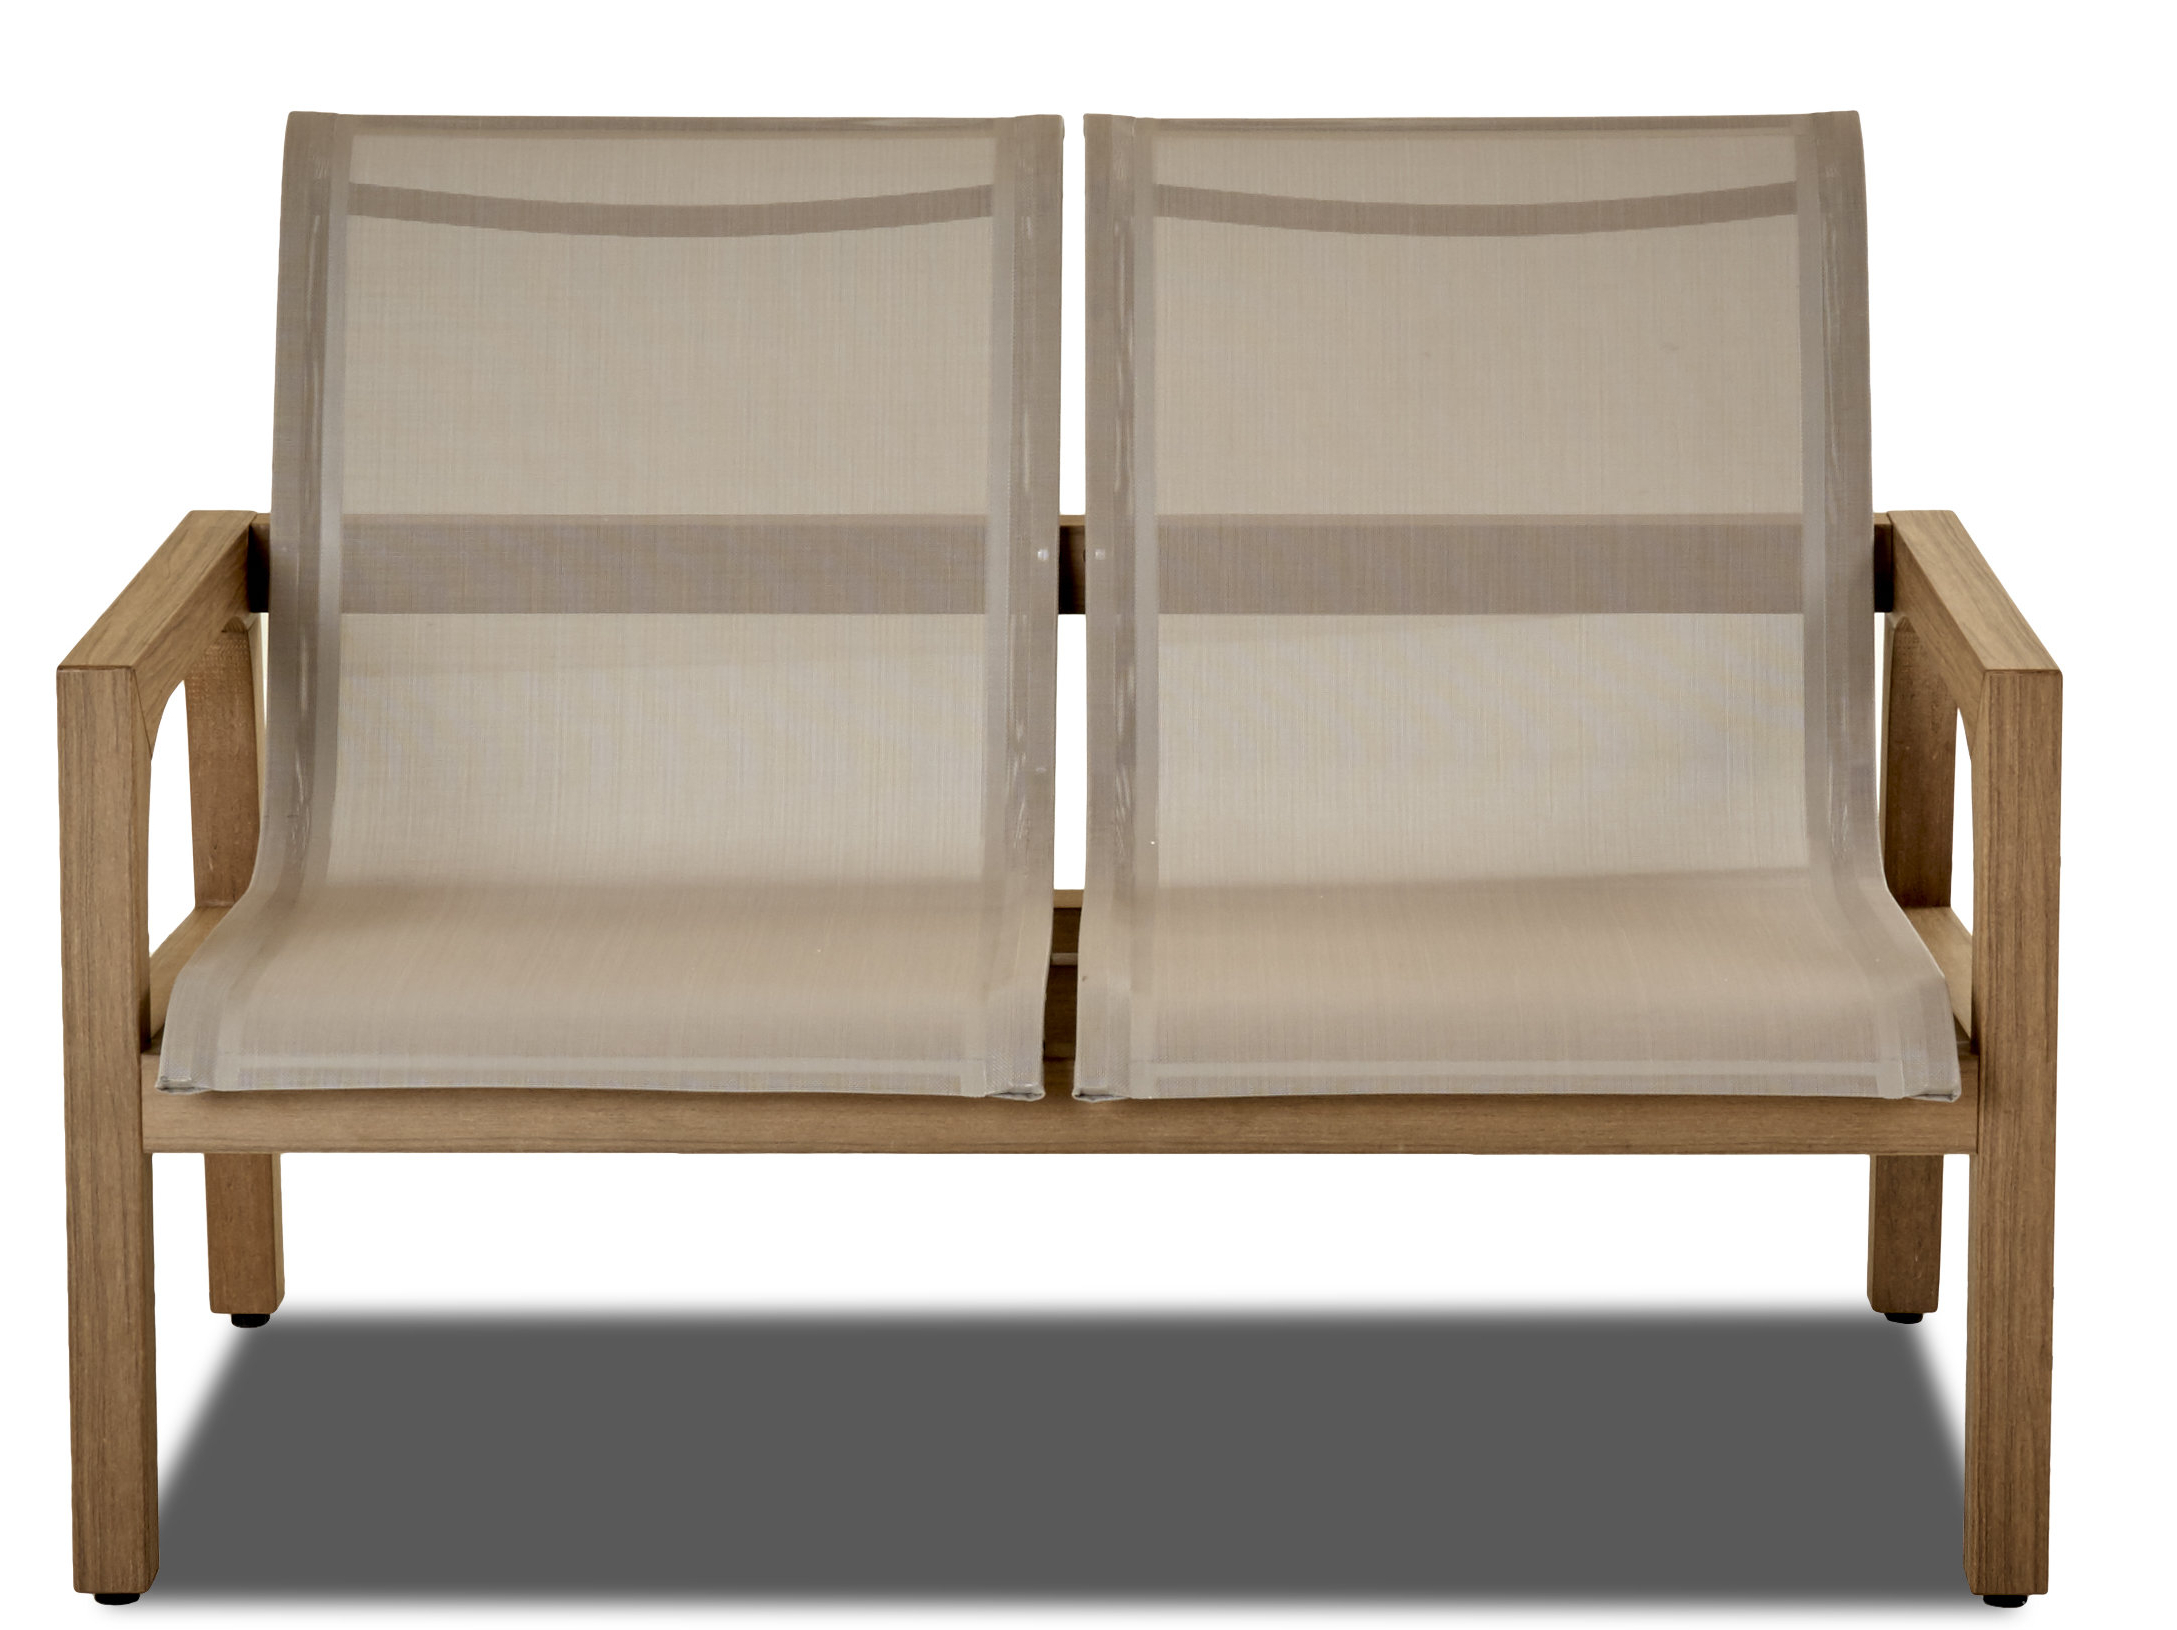 Mansfield Teak Loveseats With Cushion Throughout Recent Lawson Patio Teak Loveseat (View 13 of 20)